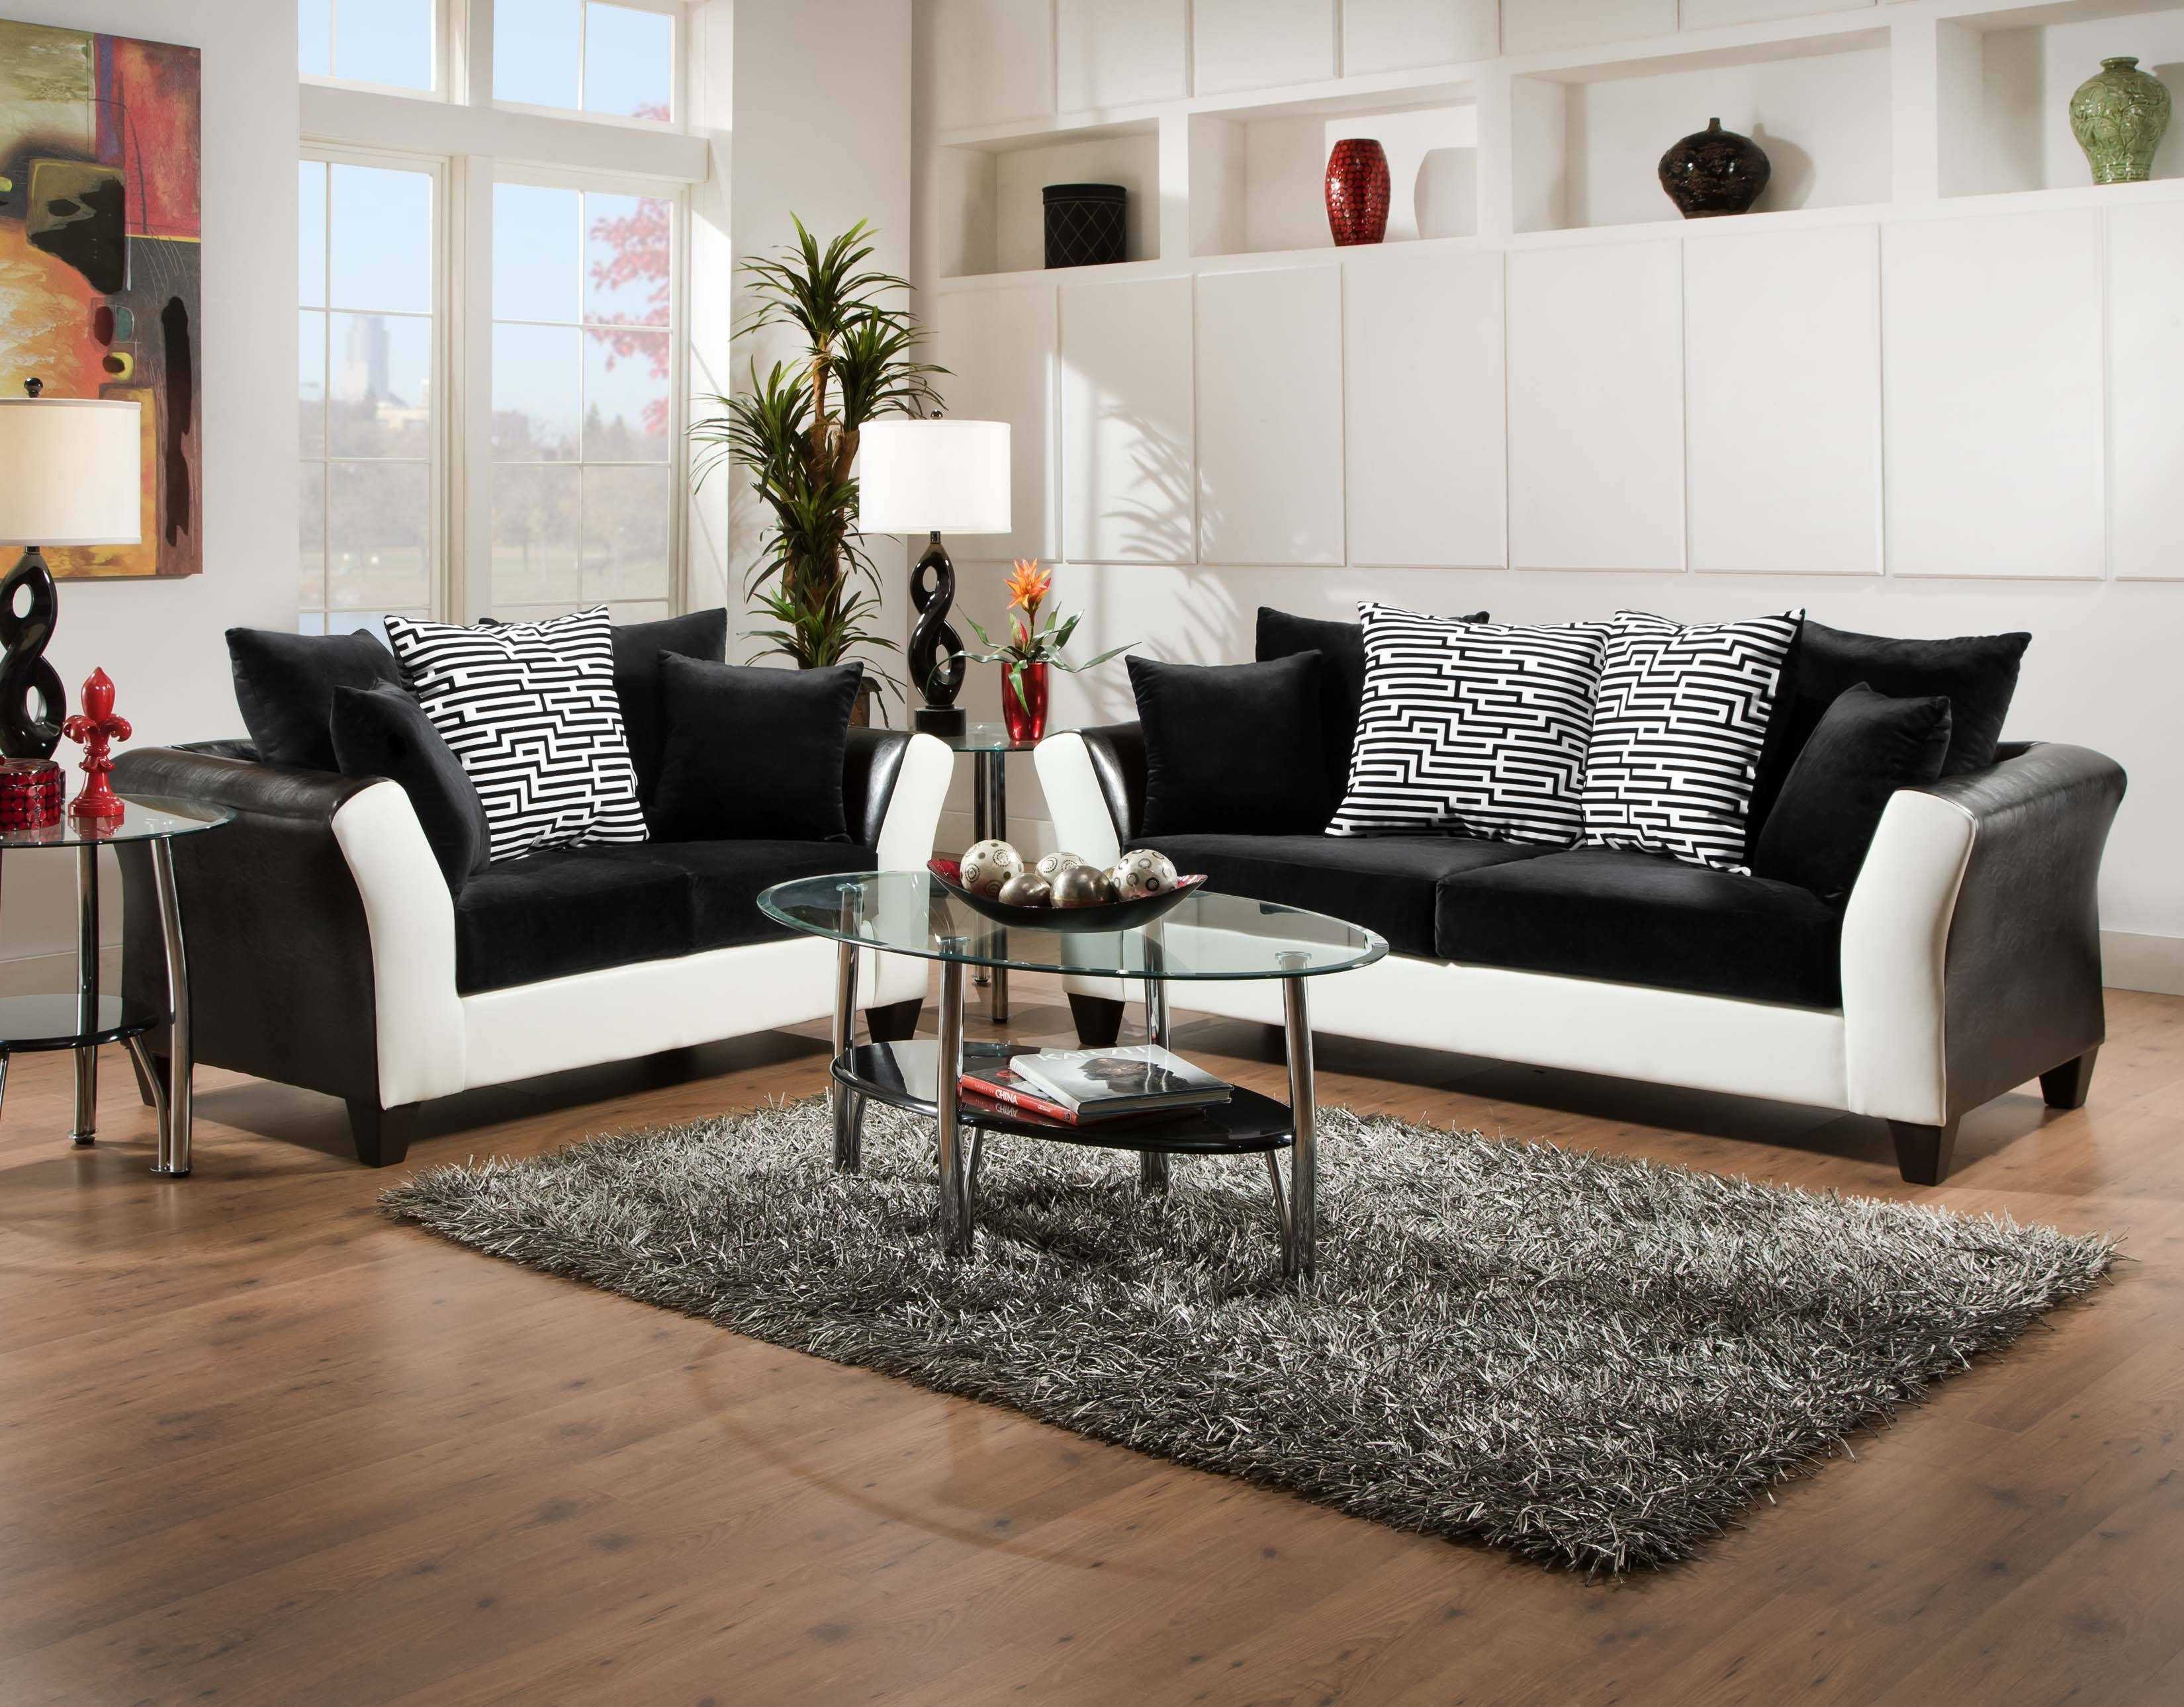 Furniture: Black Leather Cheap Loveseats With Wooden Floor And Rug inside Cheap Black Sofas (Image 9 of 30)